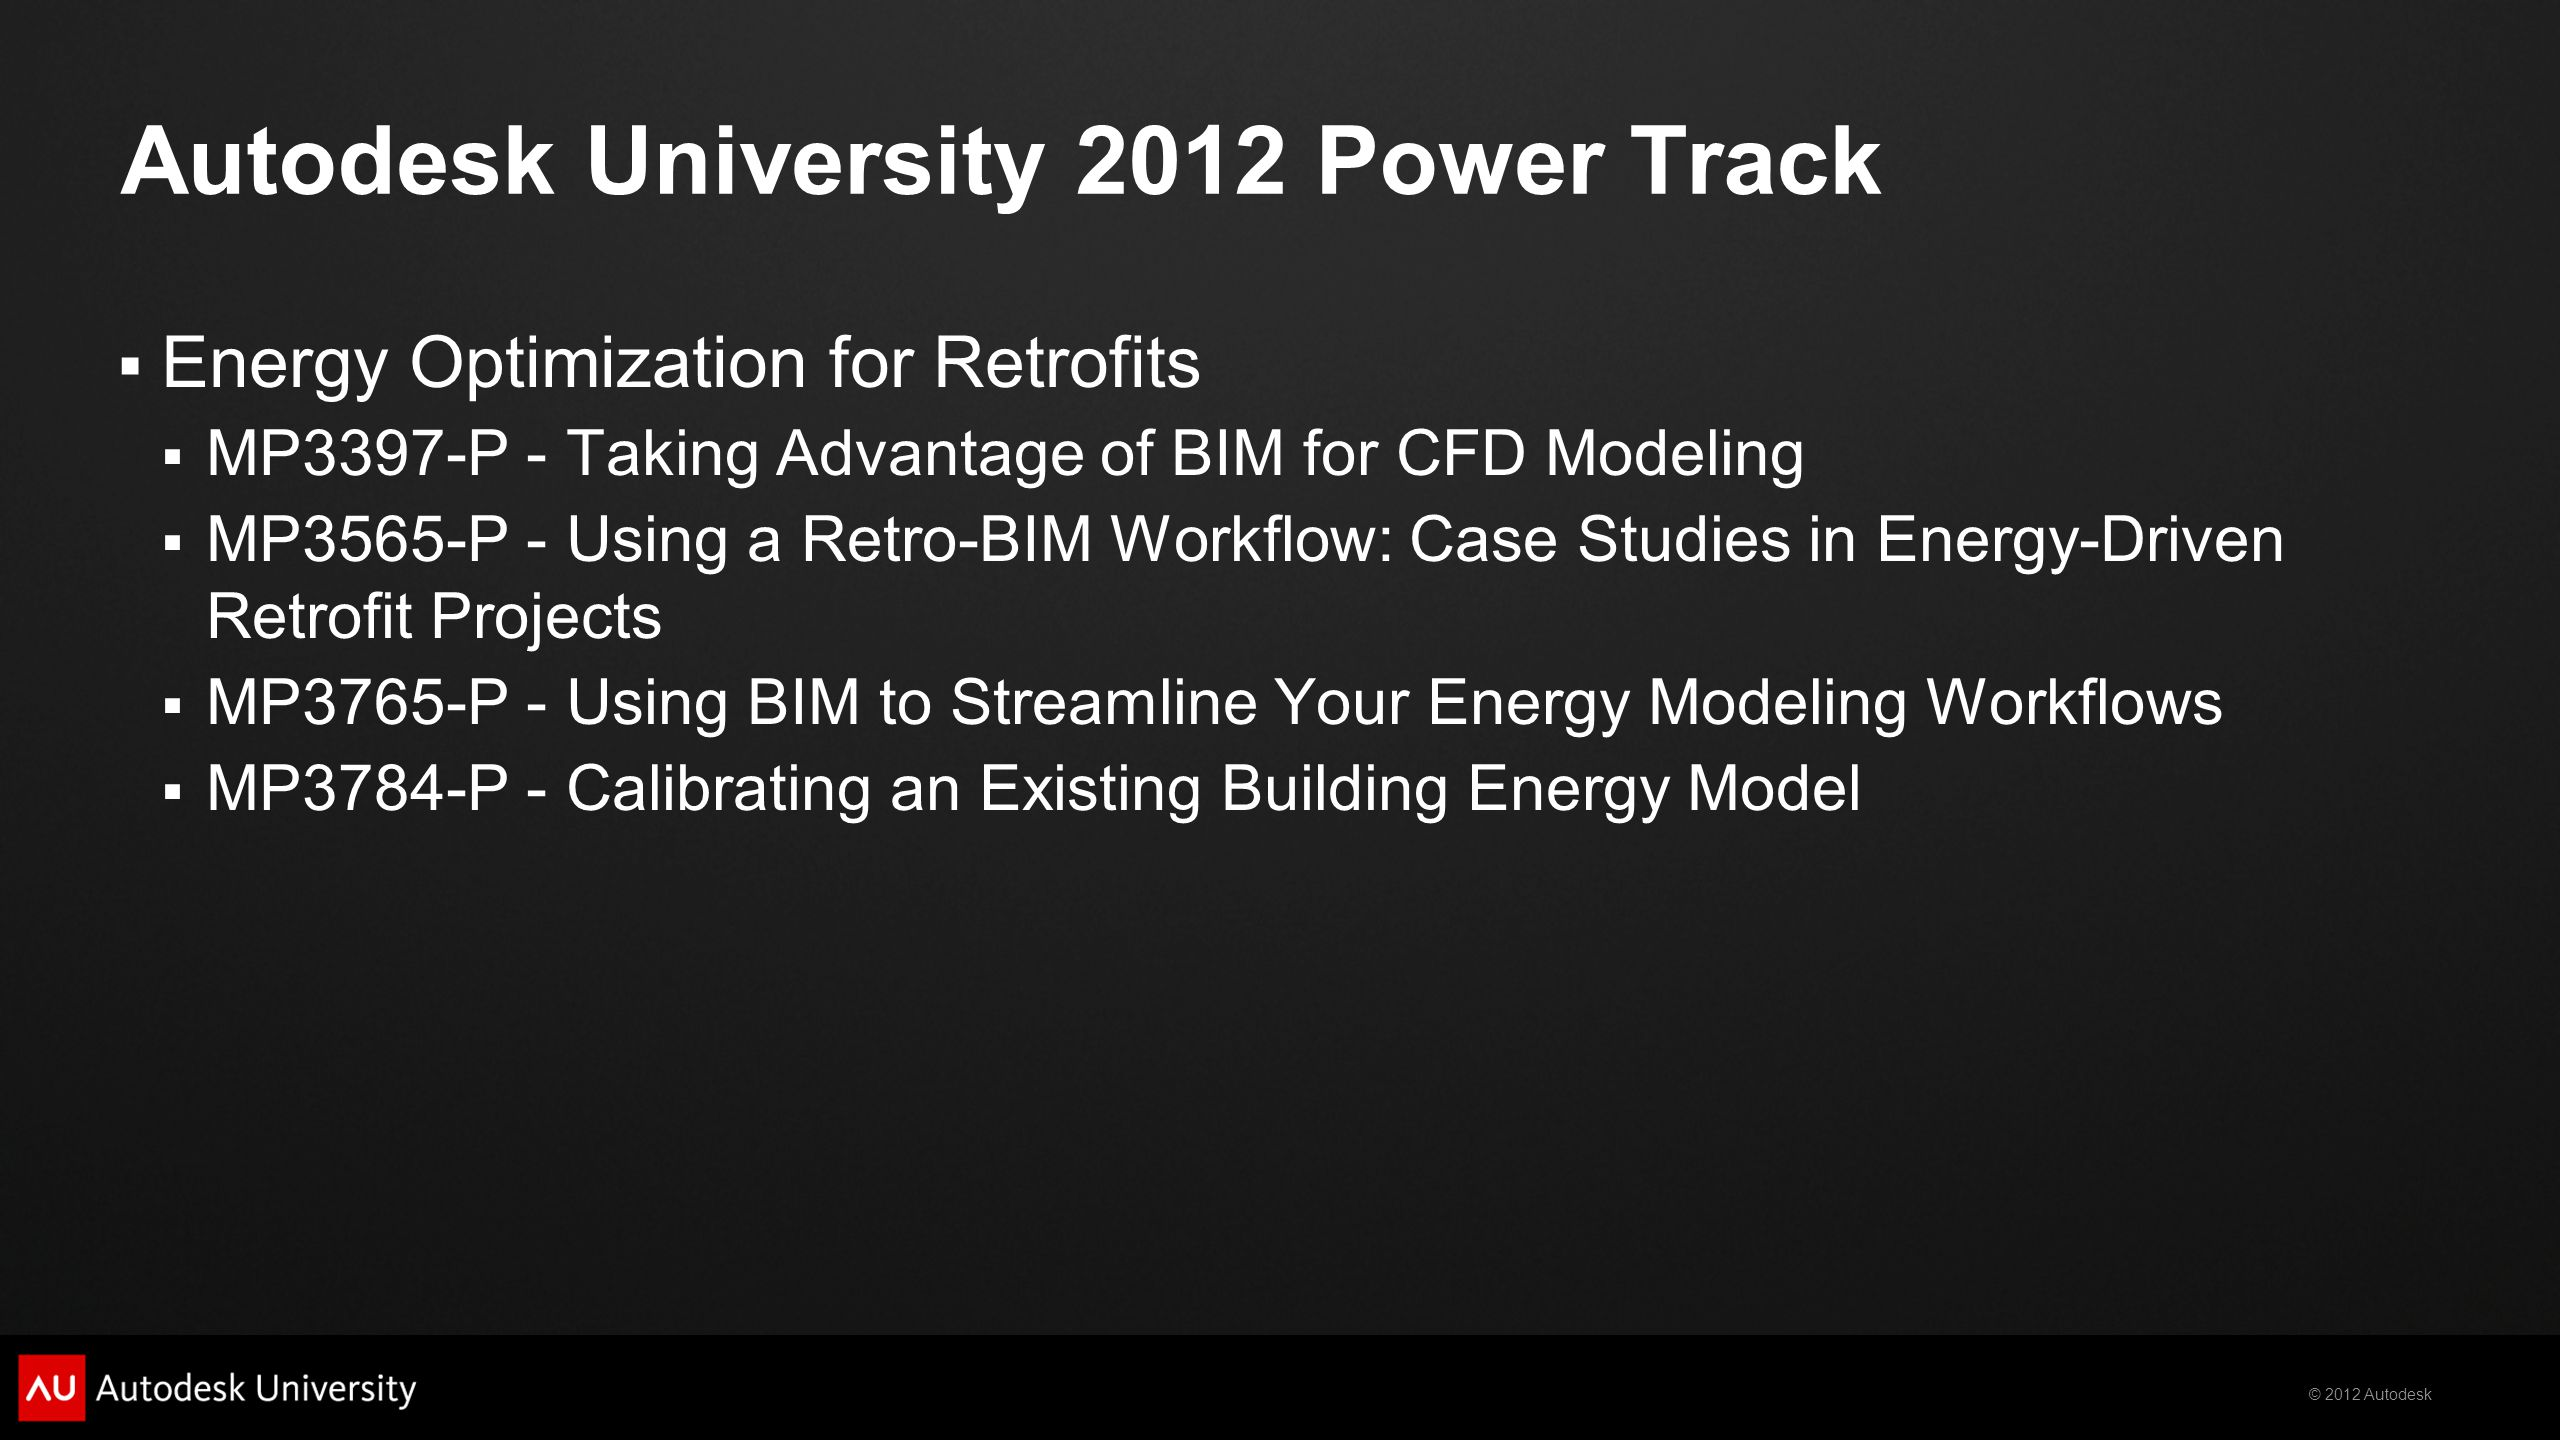 Autodesk University 2012 Power Track